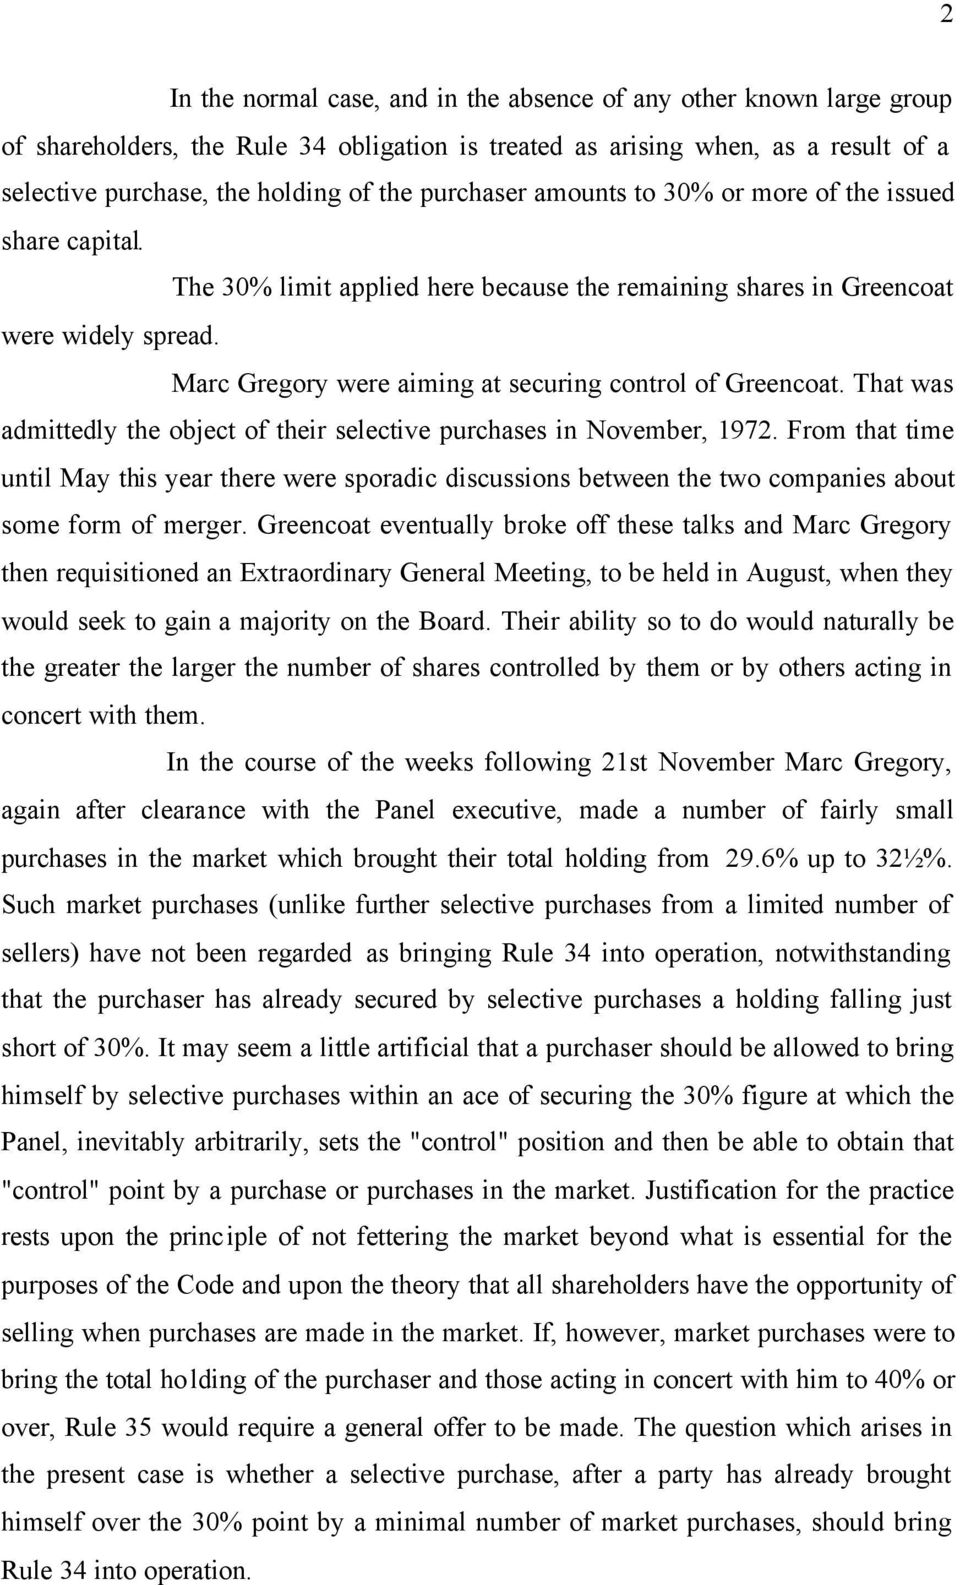 Marc Gregory were aiming at securing control of Greencoat. That was admittedly the object of their selective purchases in November, 1972.